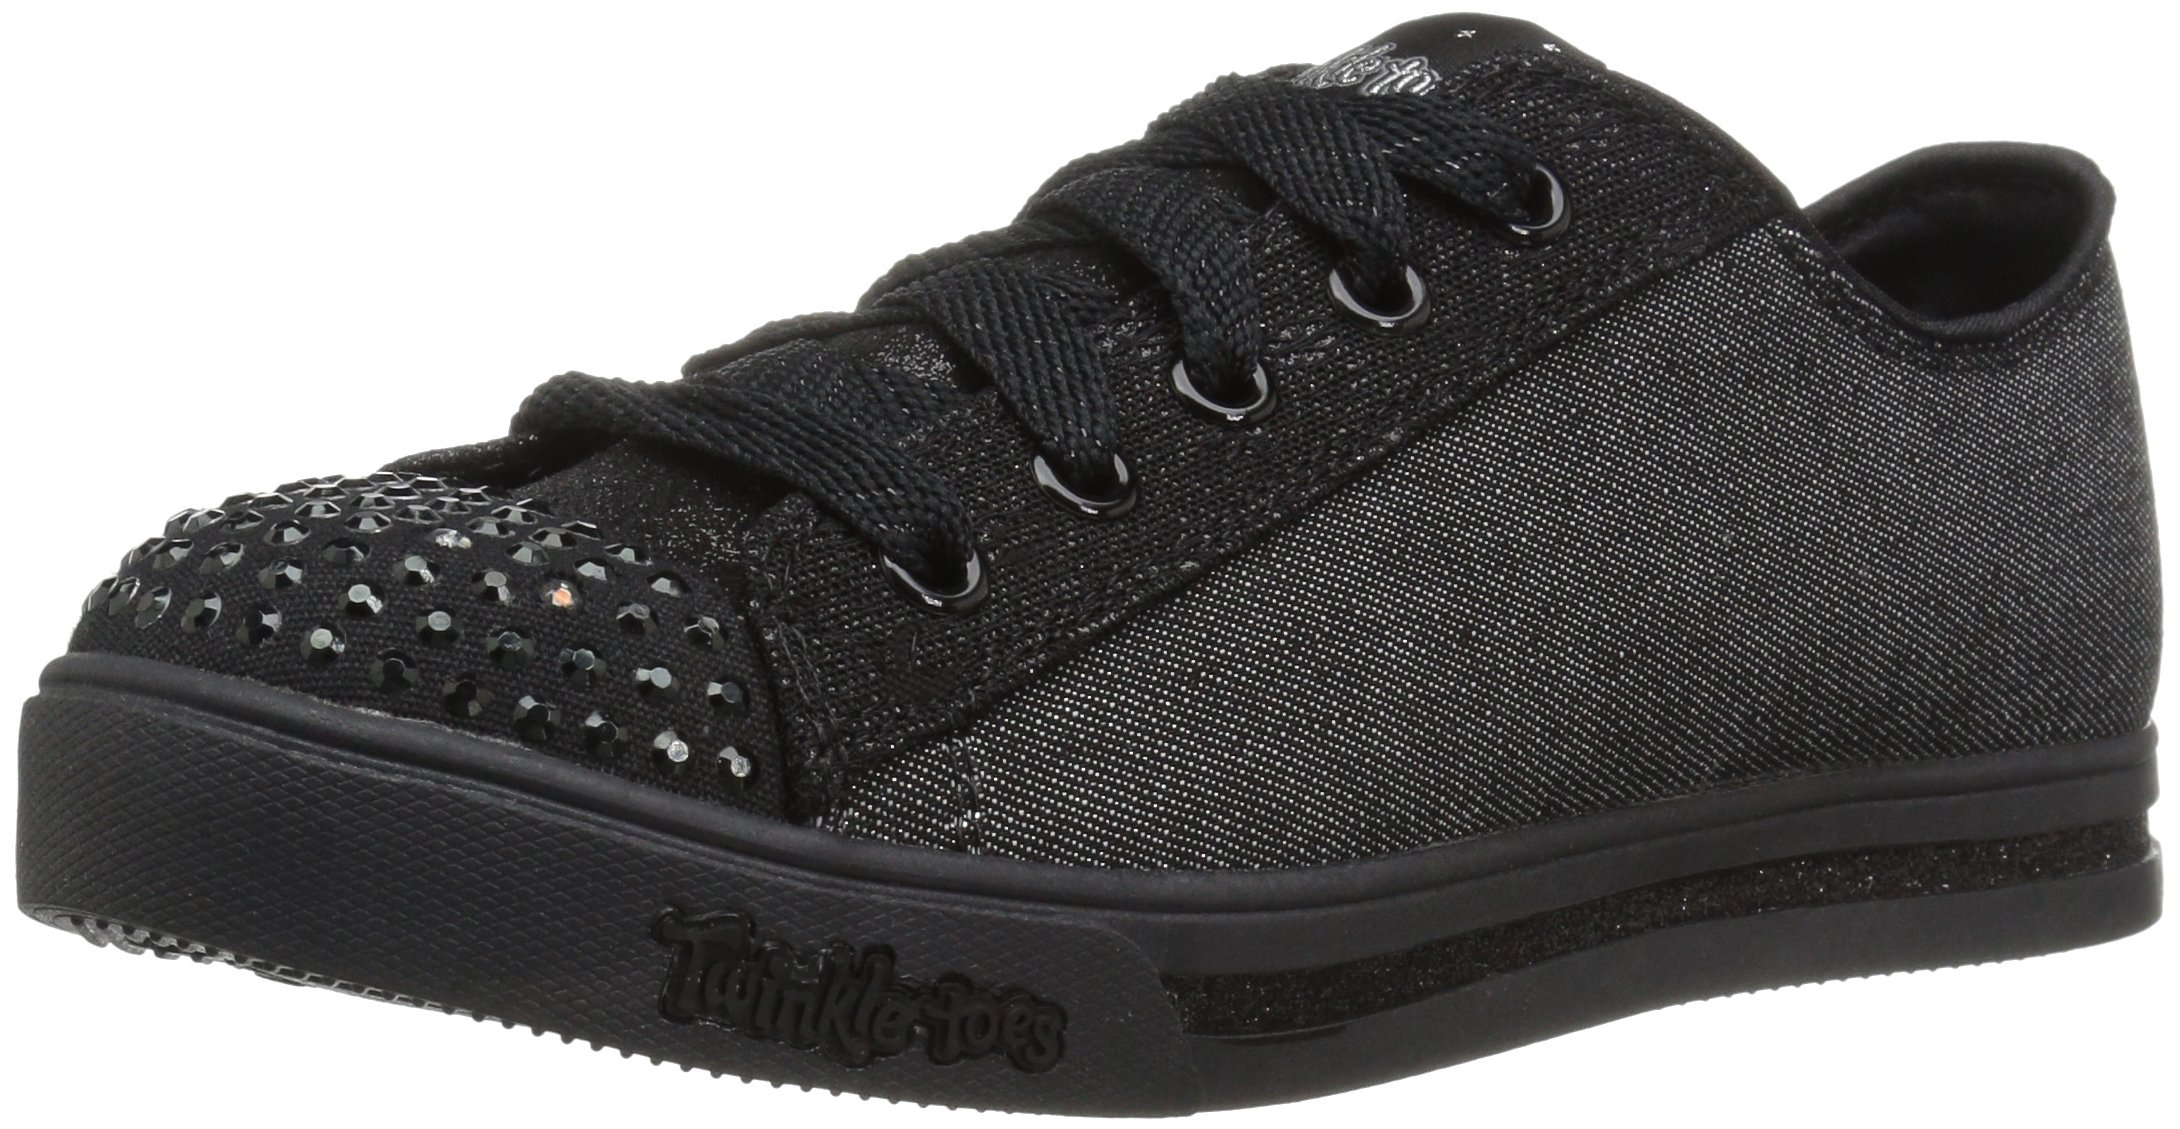 Skechers Kids Girls' Sparkle Glitz-Roll Call Sneaker,black,10.5 M US Little Kid